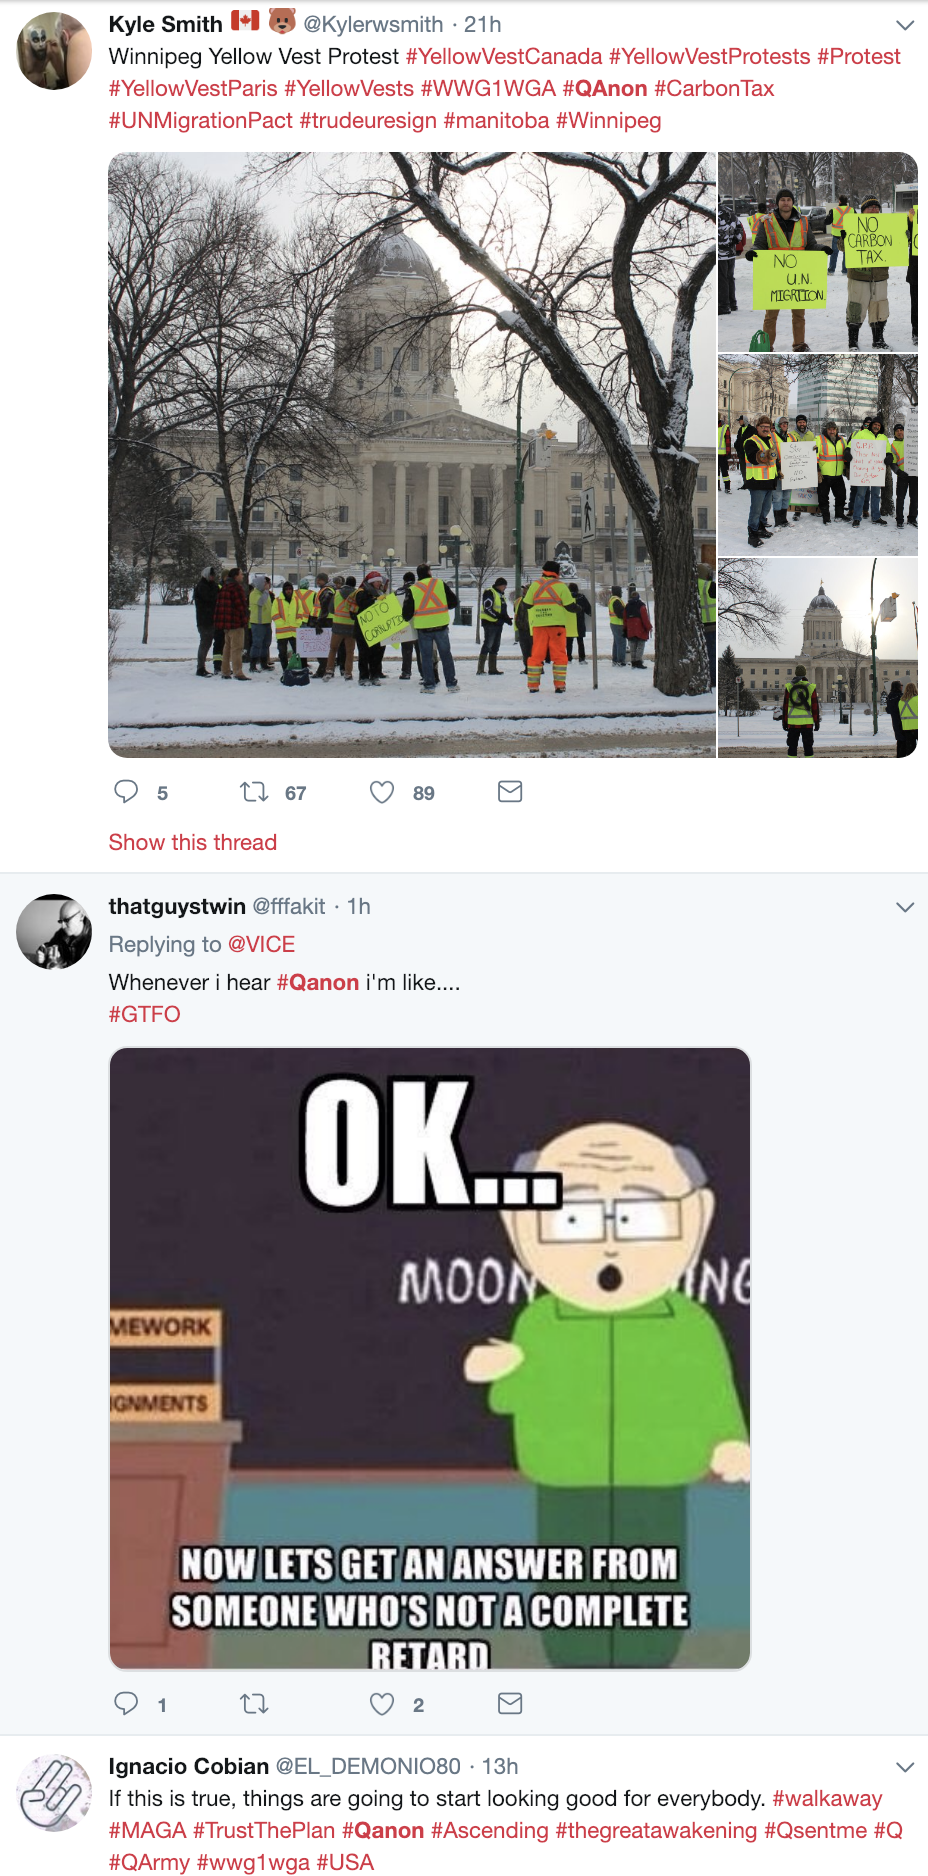 Screen-Shot-2018-12-23-at-10.44.06-AM Trump-Supporting 'QAnon' Conspiracy Theorists Whine About Being Alone For X-Mas Corruption Donald Trump Election 2016 Election 2018 Election 2020 Social Media Top Stories